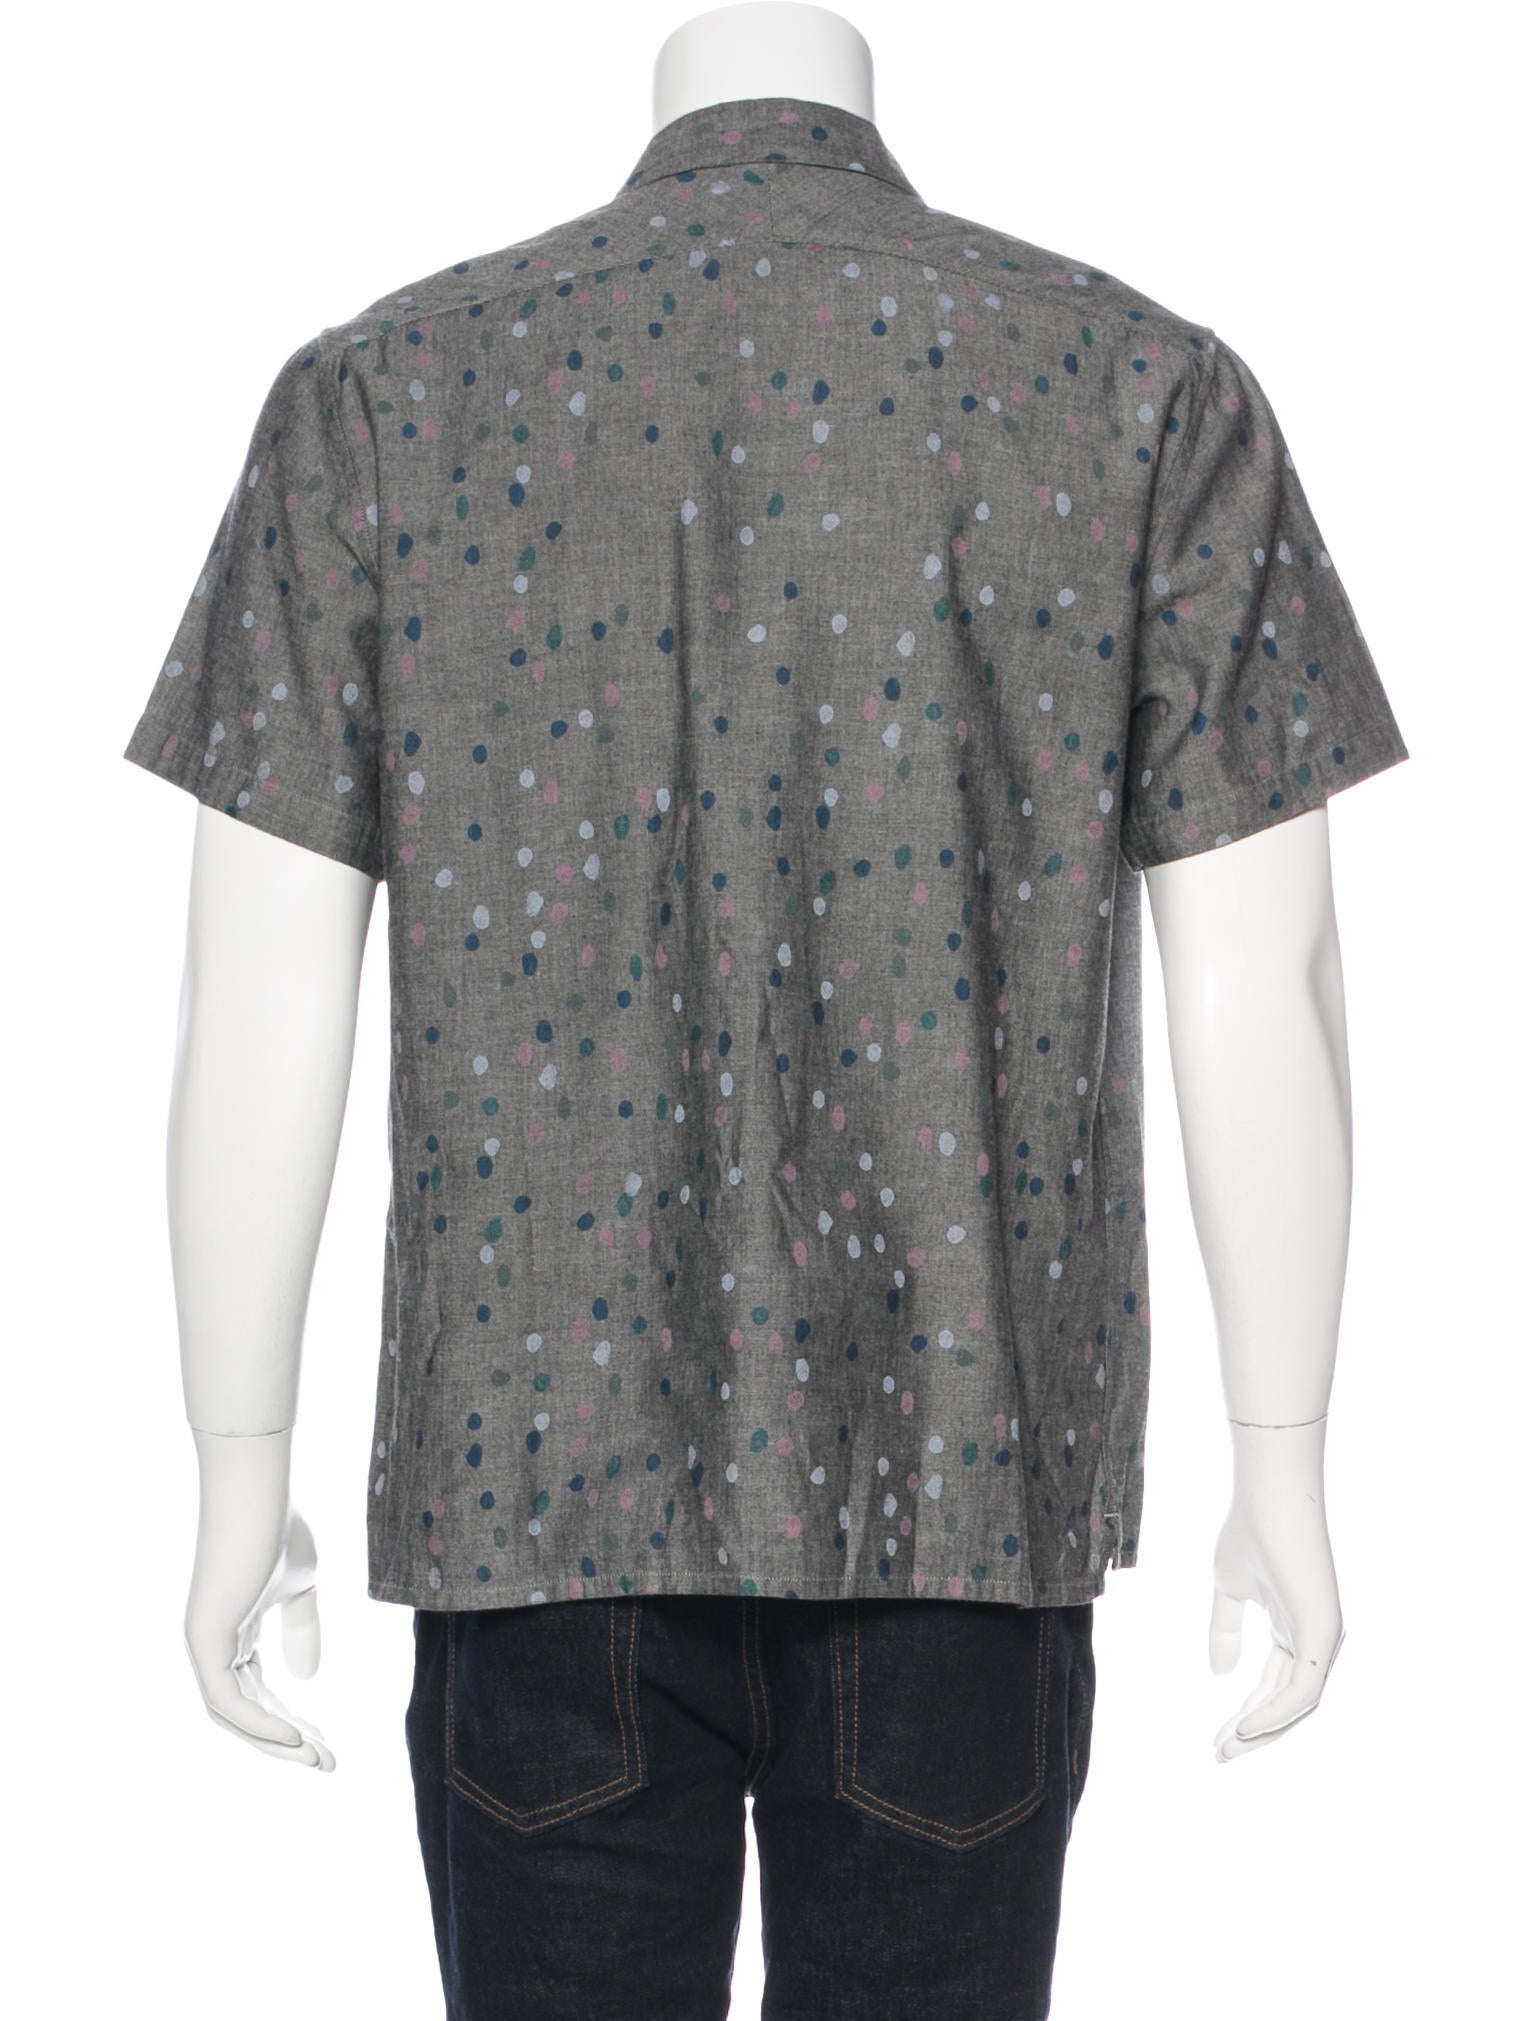 Paul smith jeans polka dot short sleeve shirt clothing for Mens polka dot shirt short sleeve